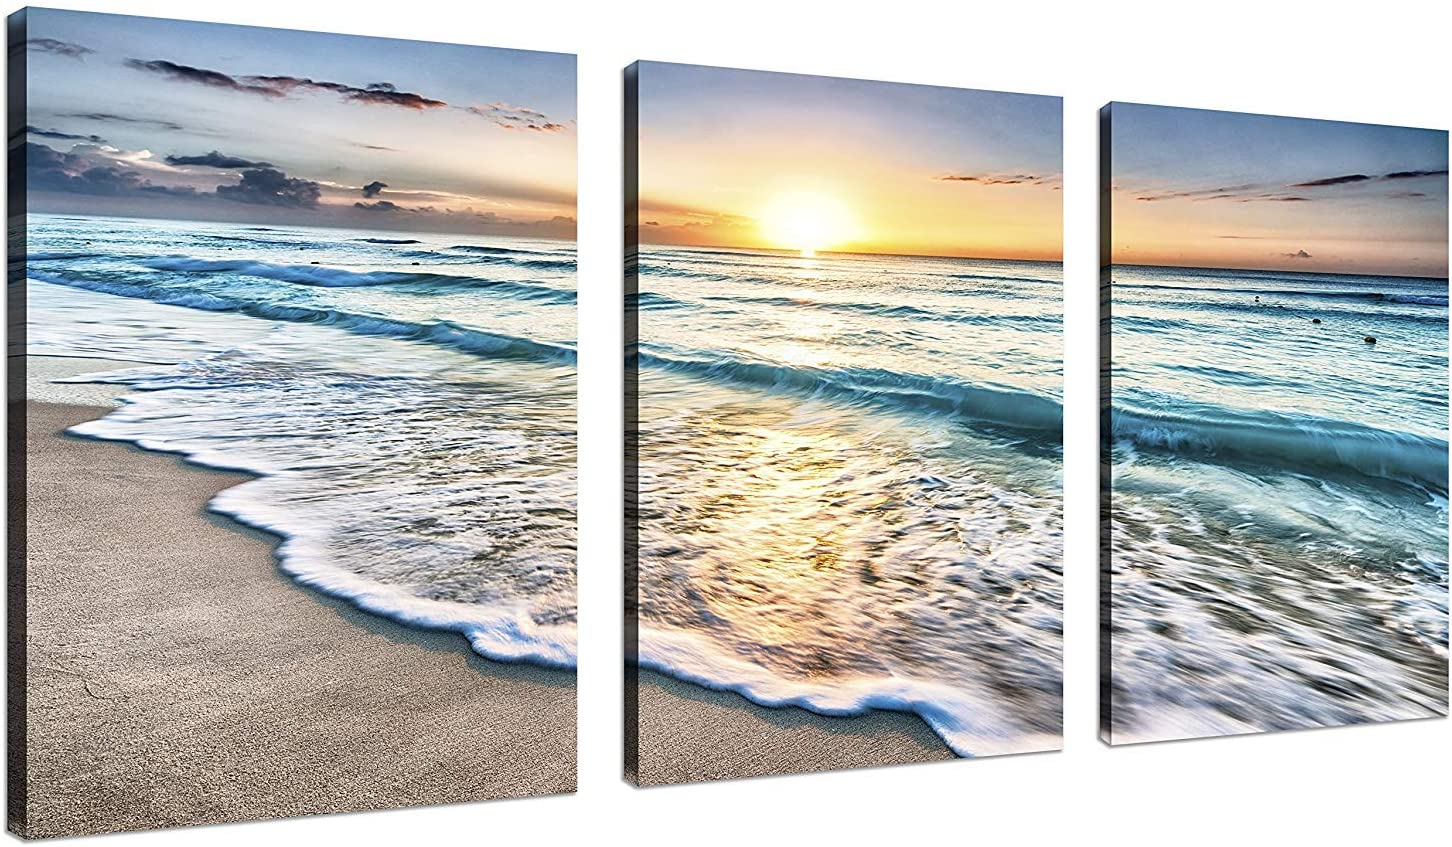 TutuBeer 3 Panel Beach Canvas Wall Art for Home Decor Blue Sea Sunset White Beach Painting The Picture Print On Canvas Seascape The Pictures for Home Decor Decoration, Ready to Hang: Posters & Prints